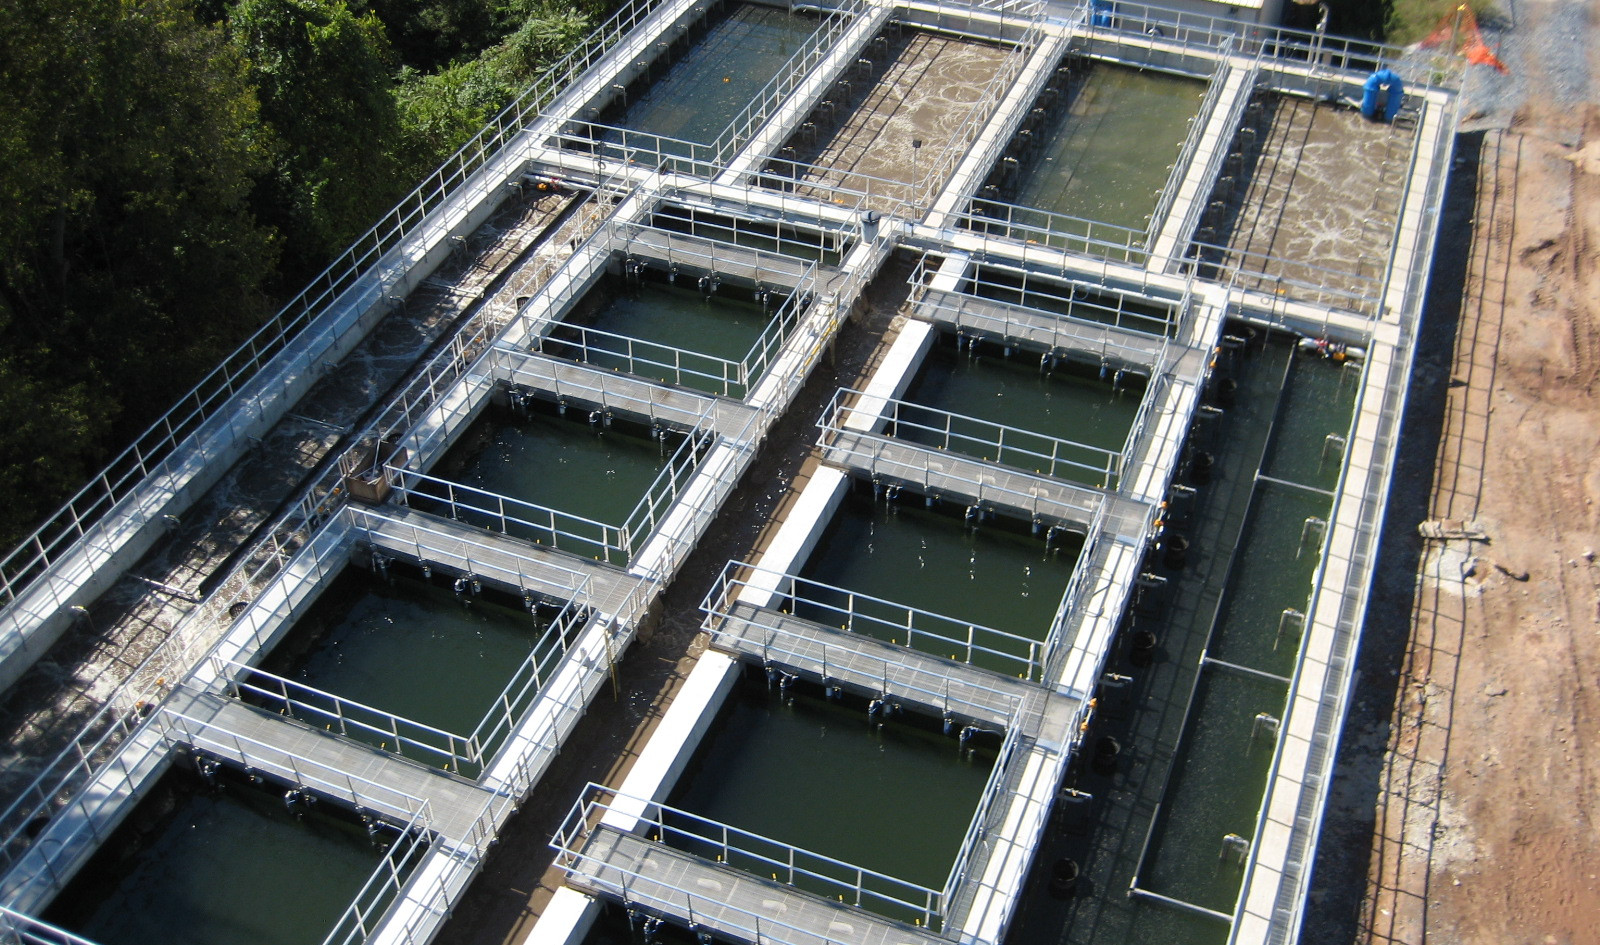 Aero-Mod biological nutrient removal (BNR) wastewater treatment plant